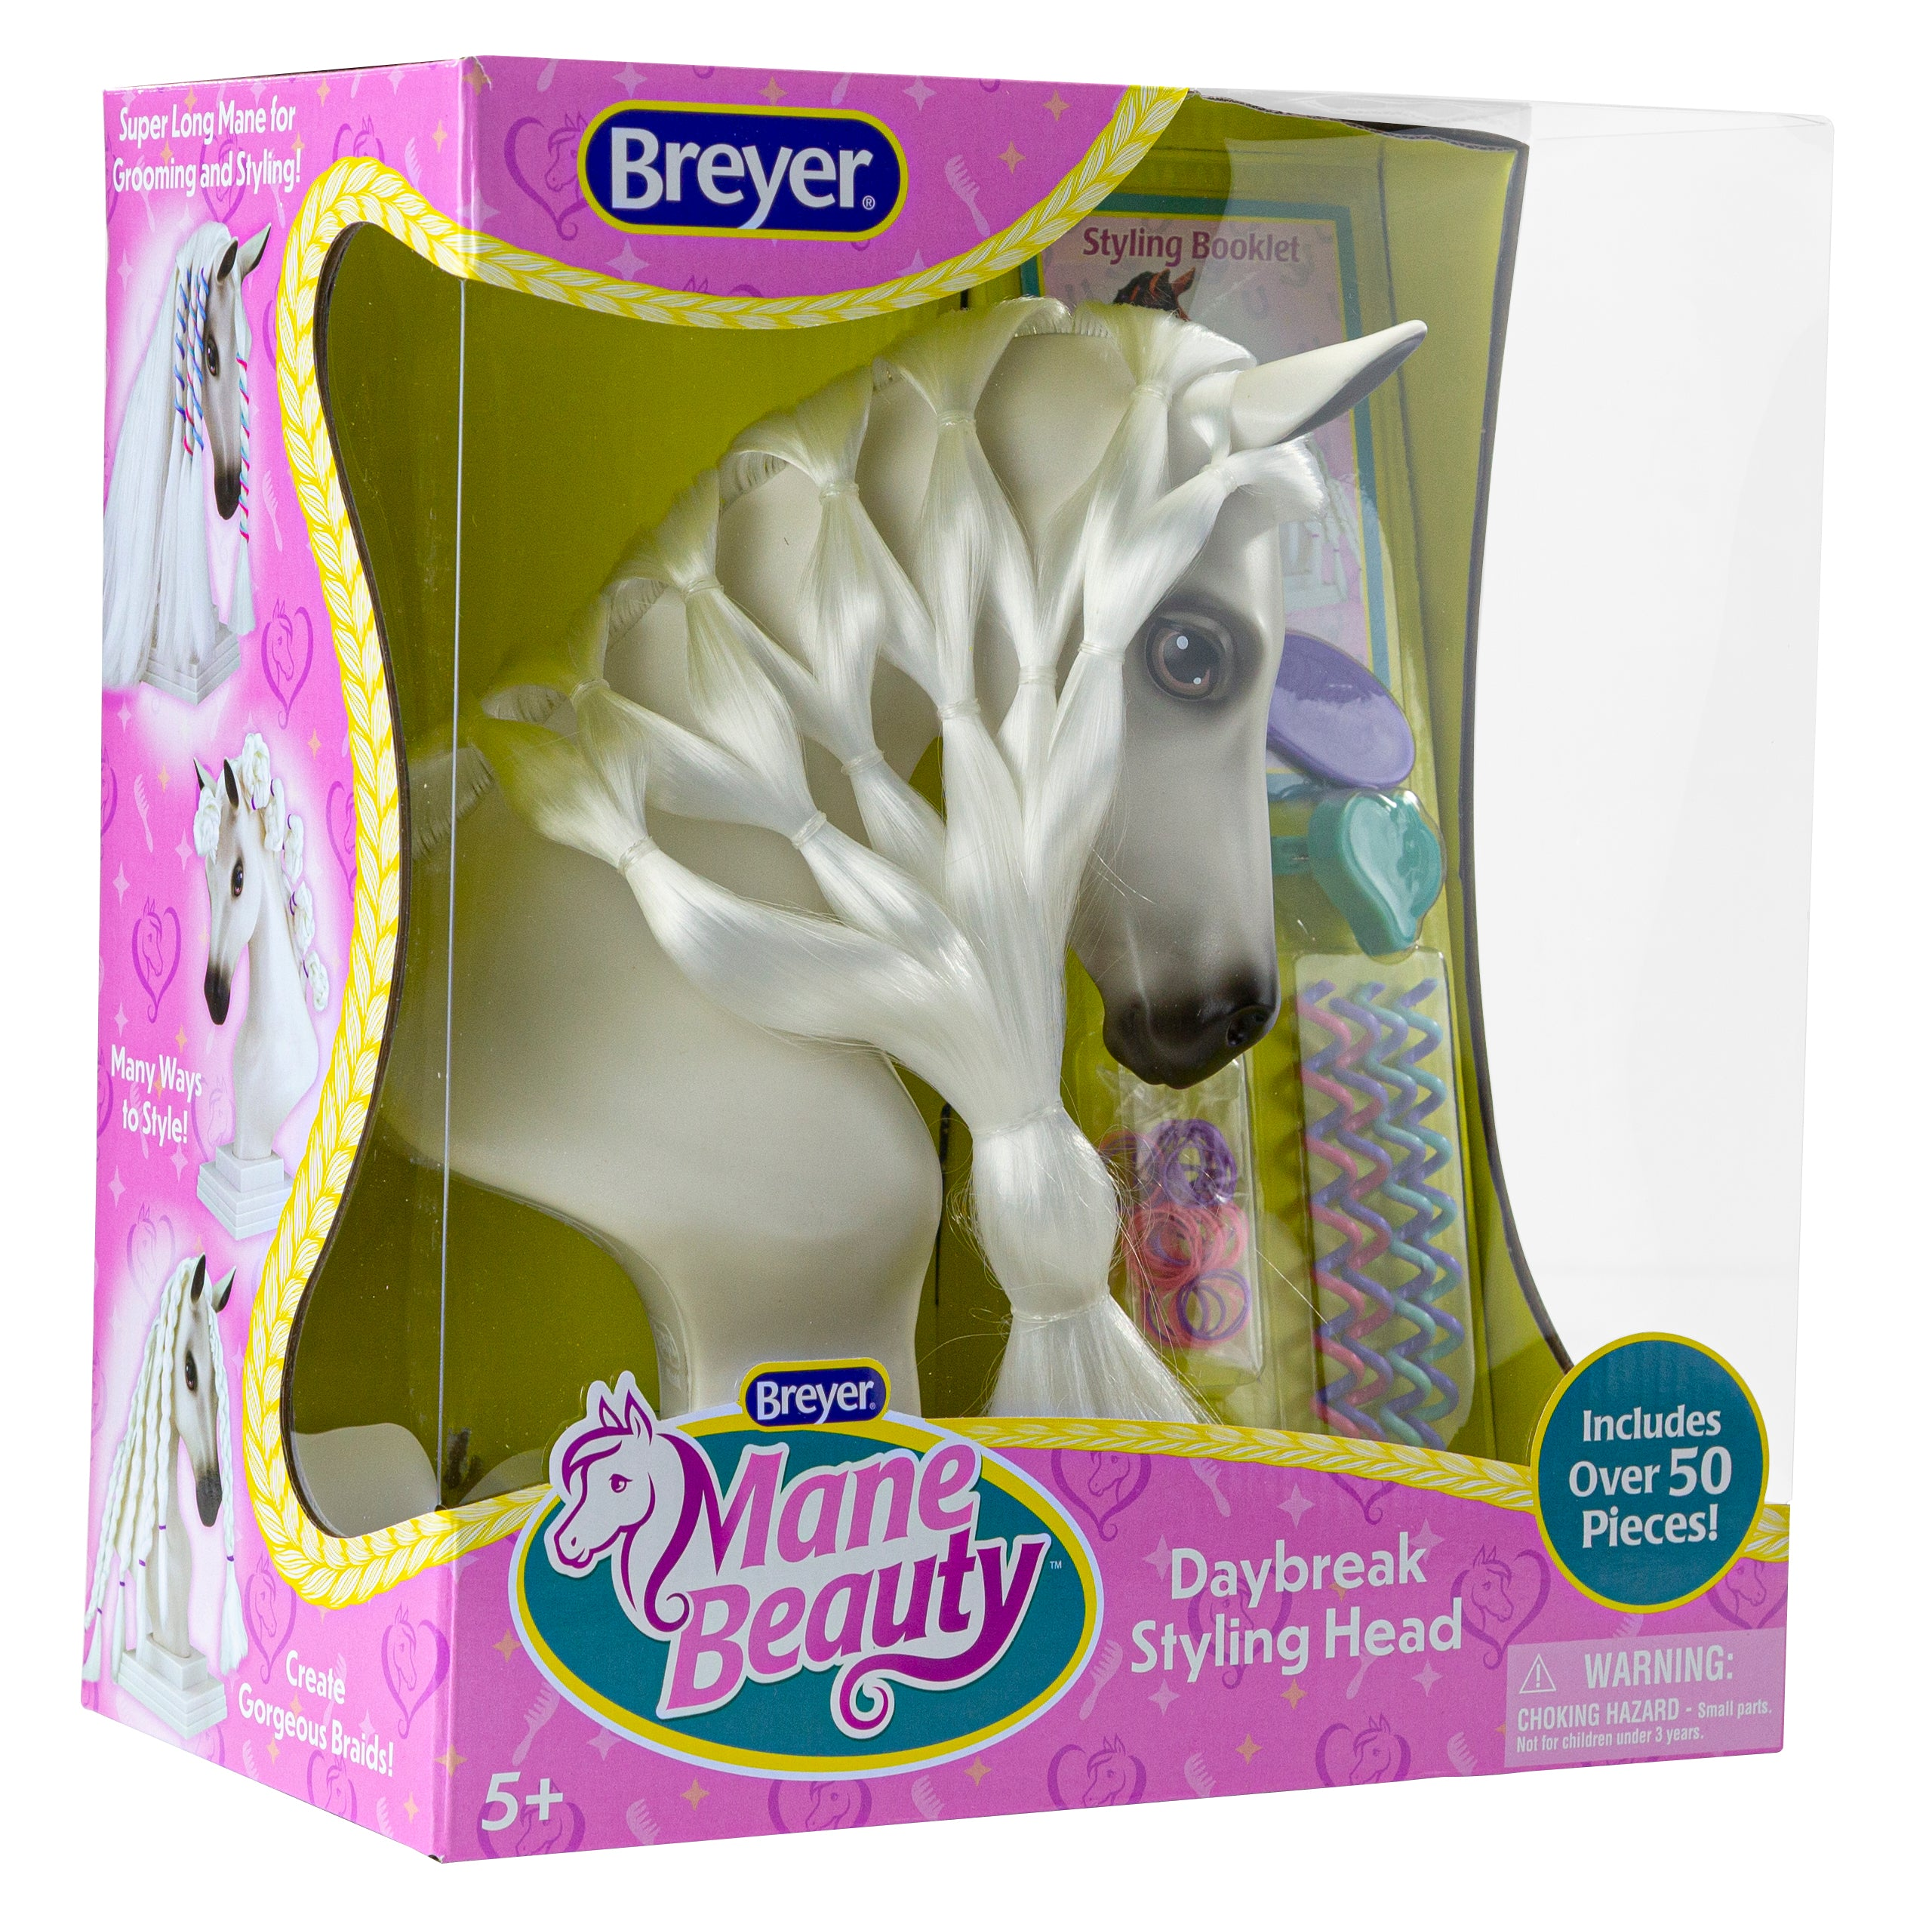 Breyer Mane Beauty Styling Head-Daybreak